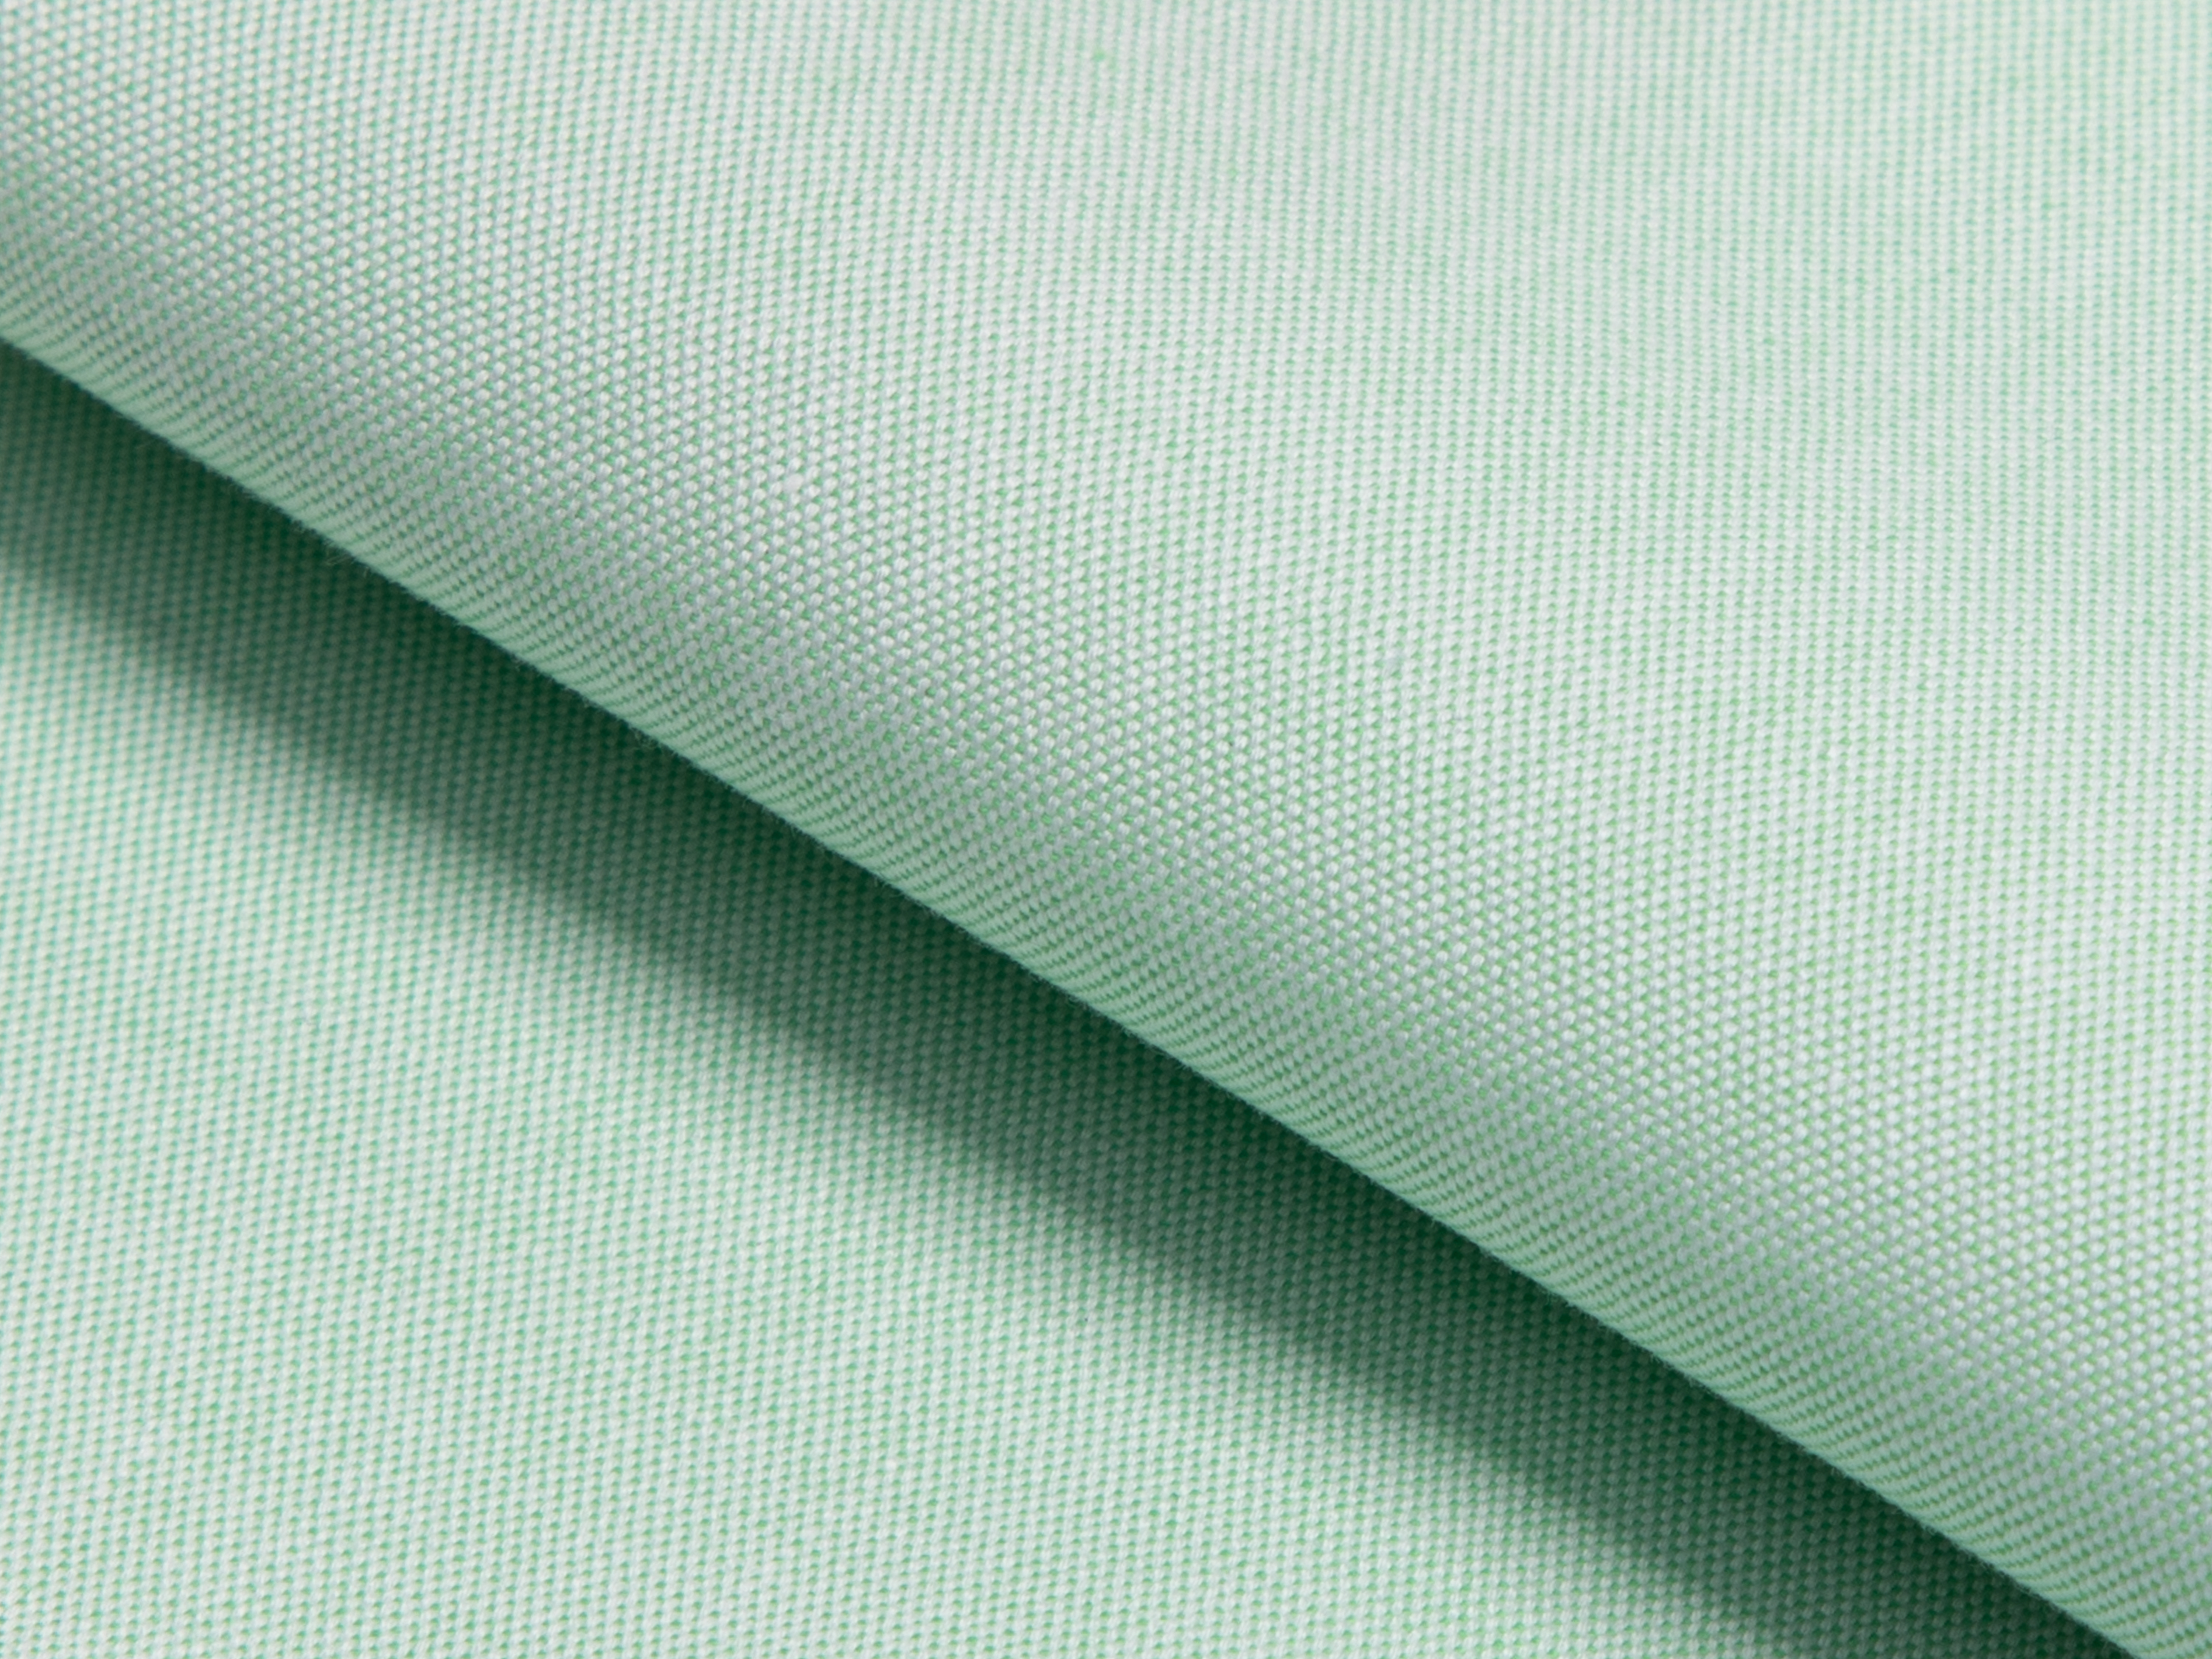 Buy tailor made shirts online - PINPOINT LUXURY (NEW) - Pinpoint Mint